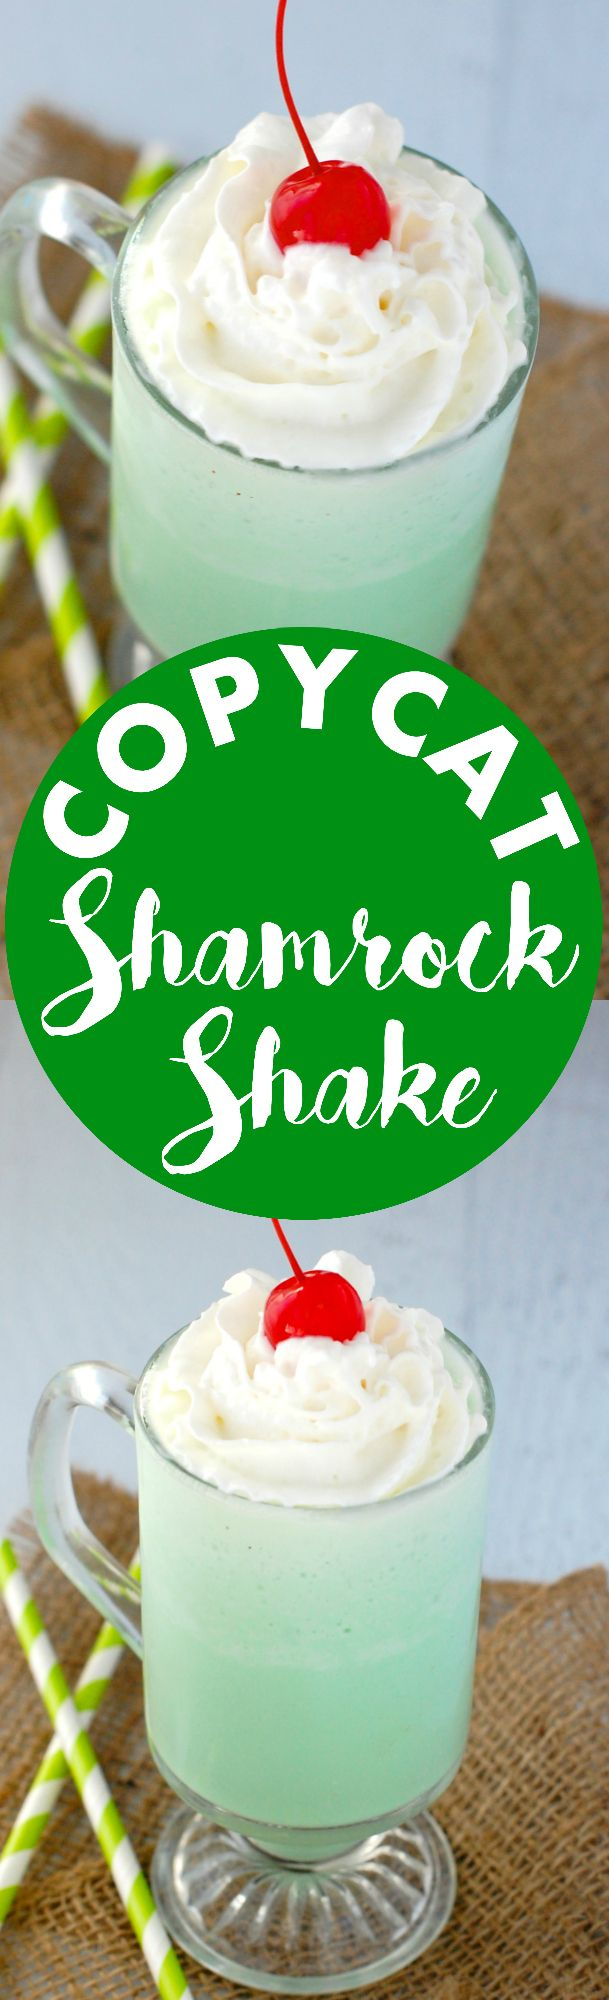 Copycat Shamrock Shake! | The delicious Shamrock Shake, made super easy at home!